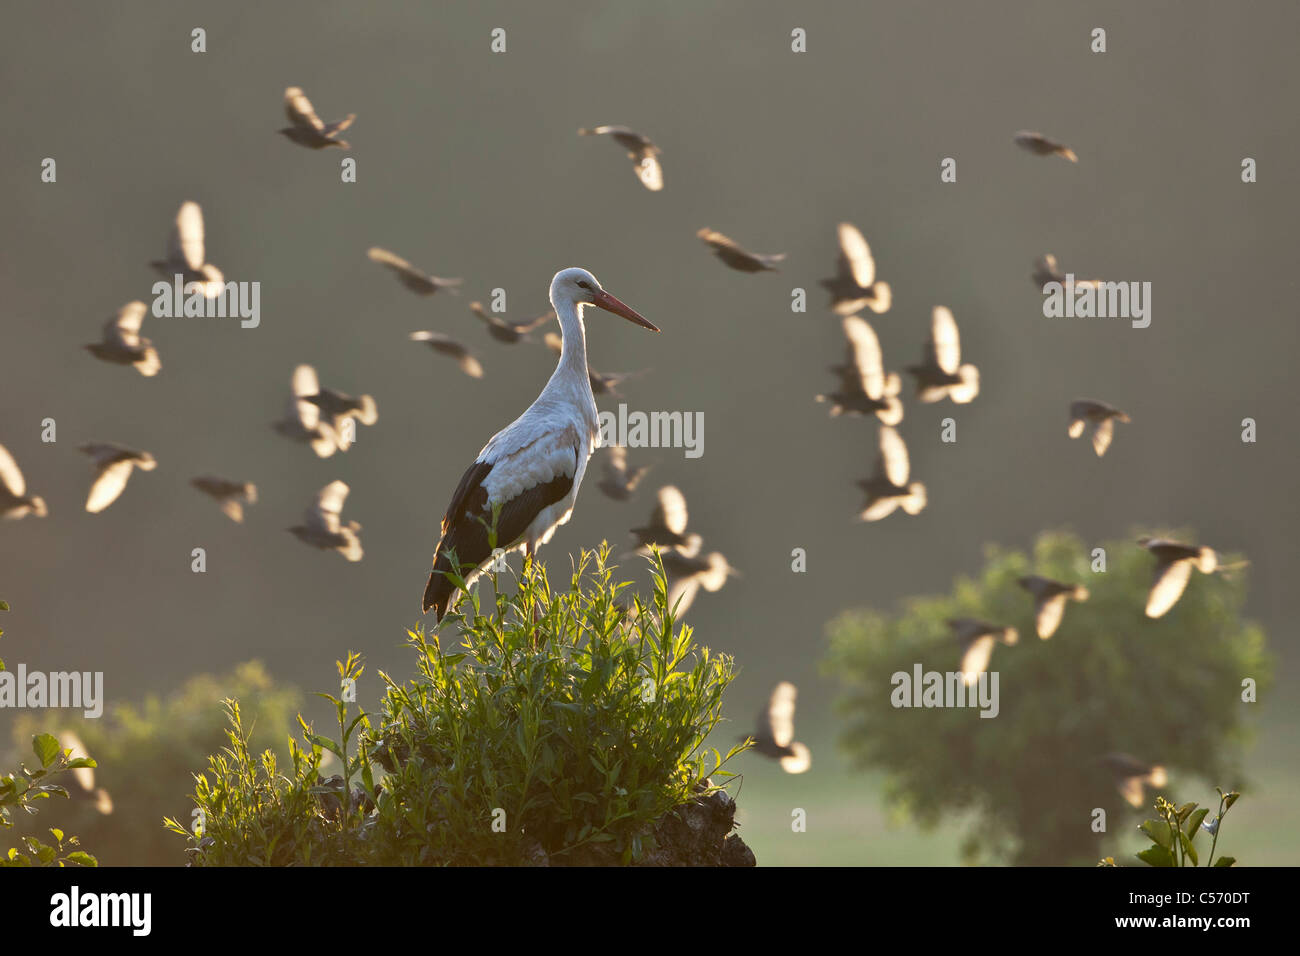 The Netherlands, 's-Graveland, Stork perched on branch. A flock of starlings flying in background. - Stock Image